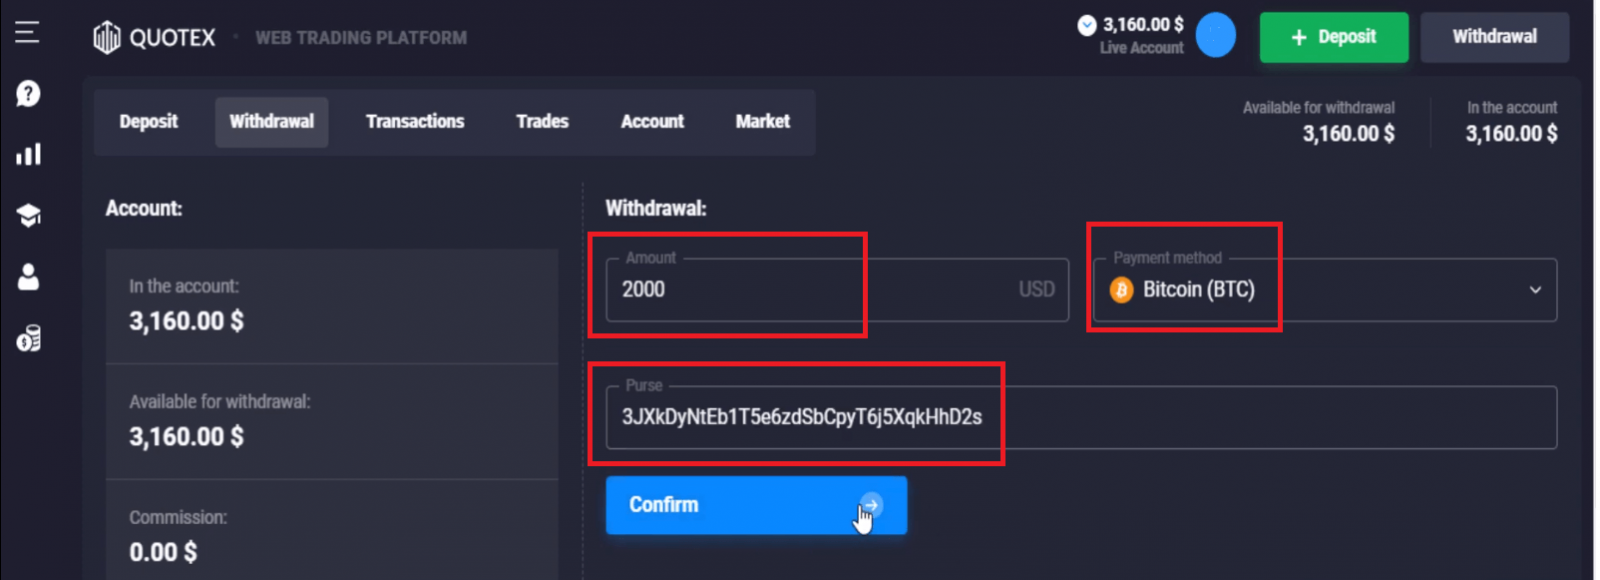 How to Sign in and Withdraw Money from Quotex